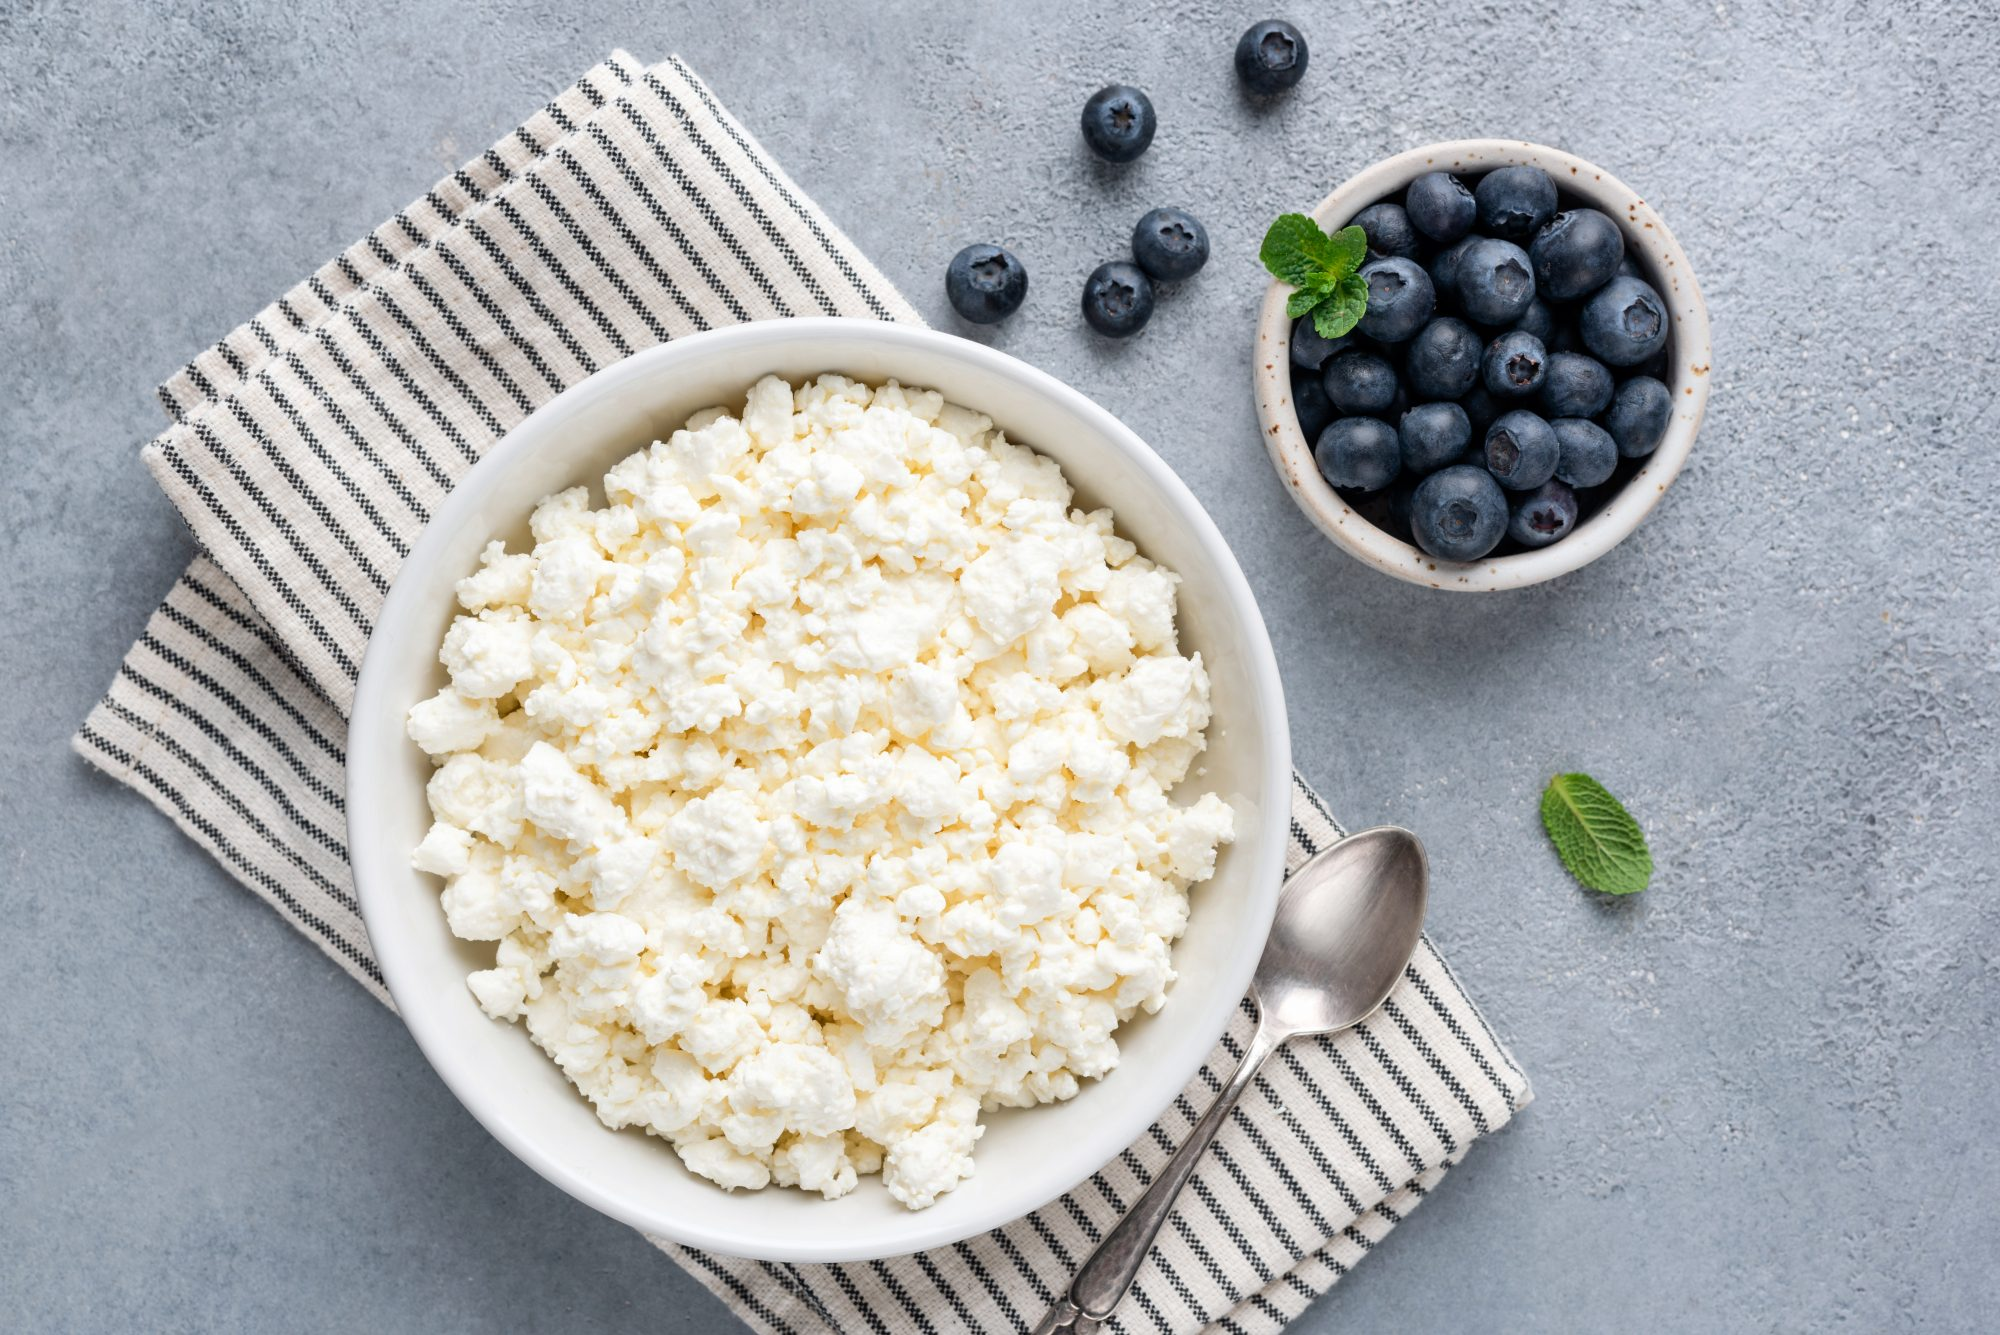 Cottage Cheese Getty 4/10/20